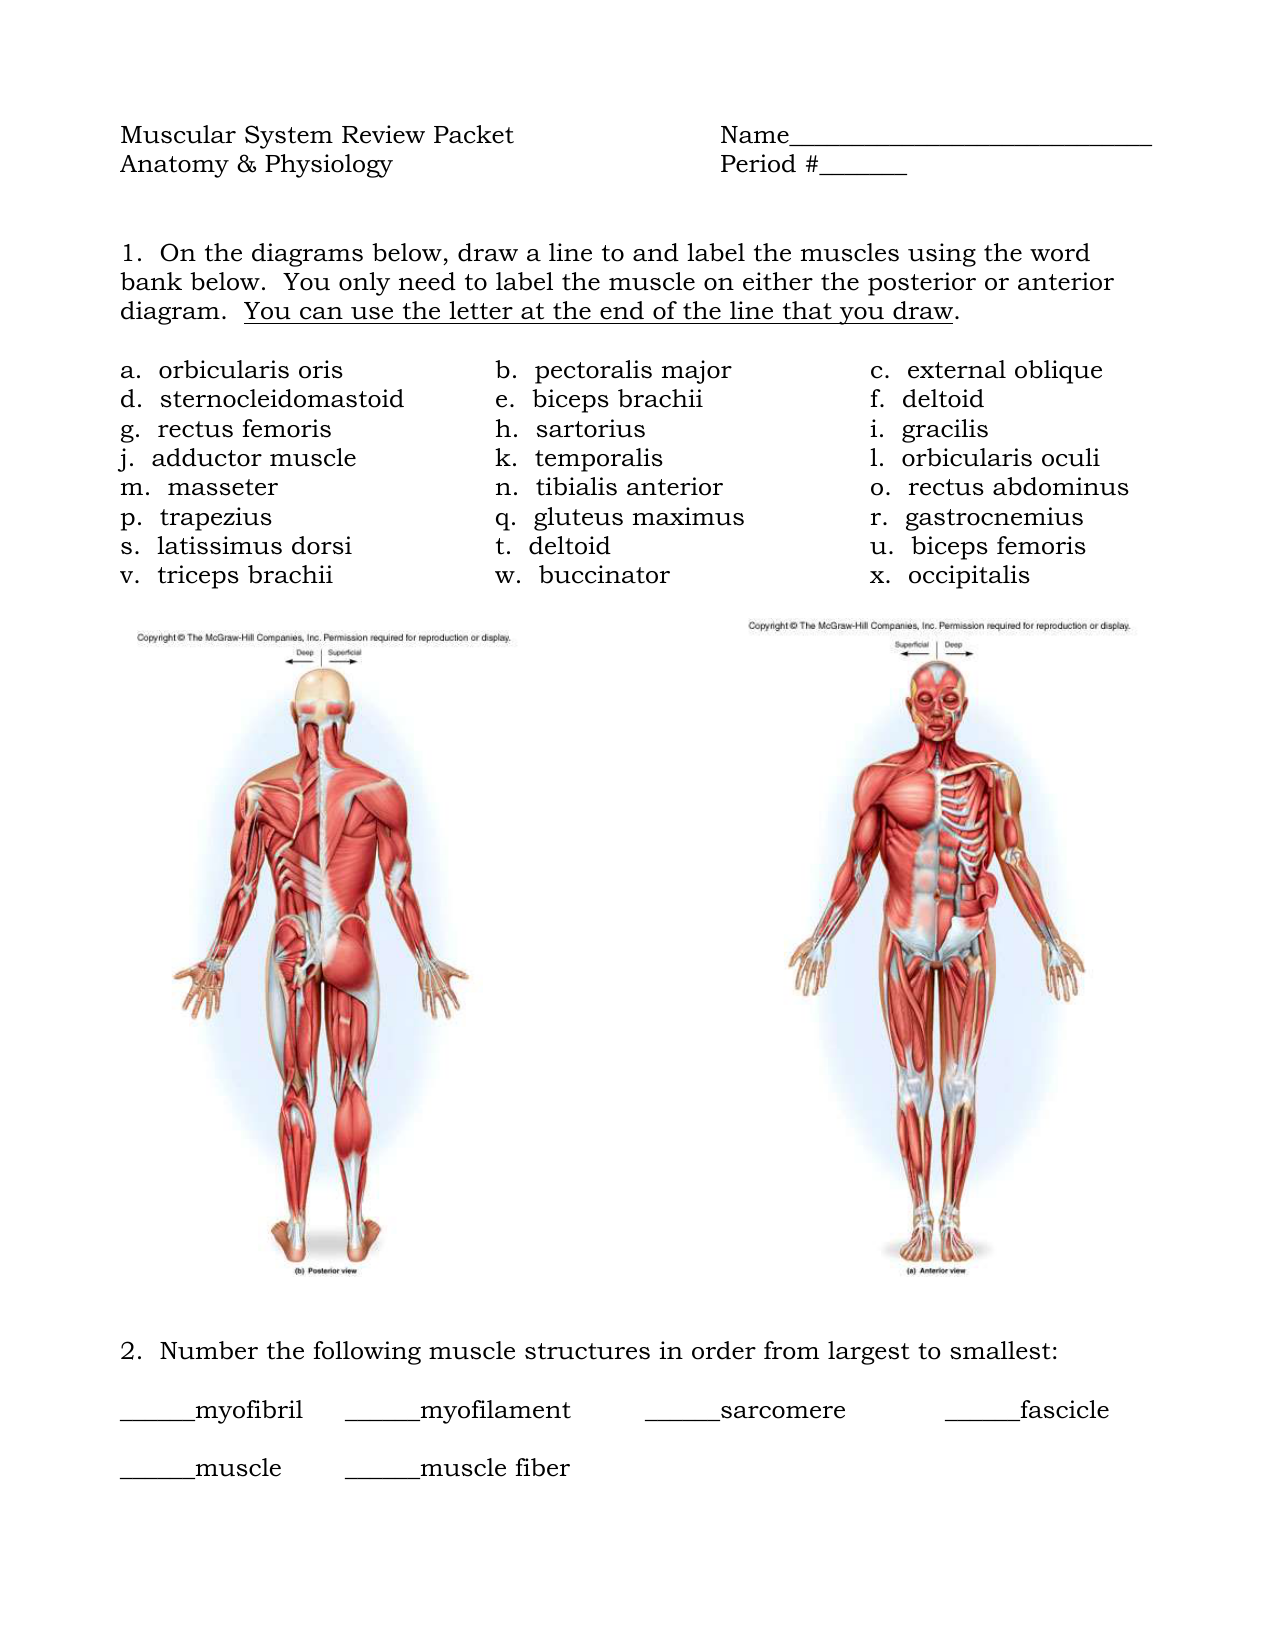 Muscular system review packet pooptronica